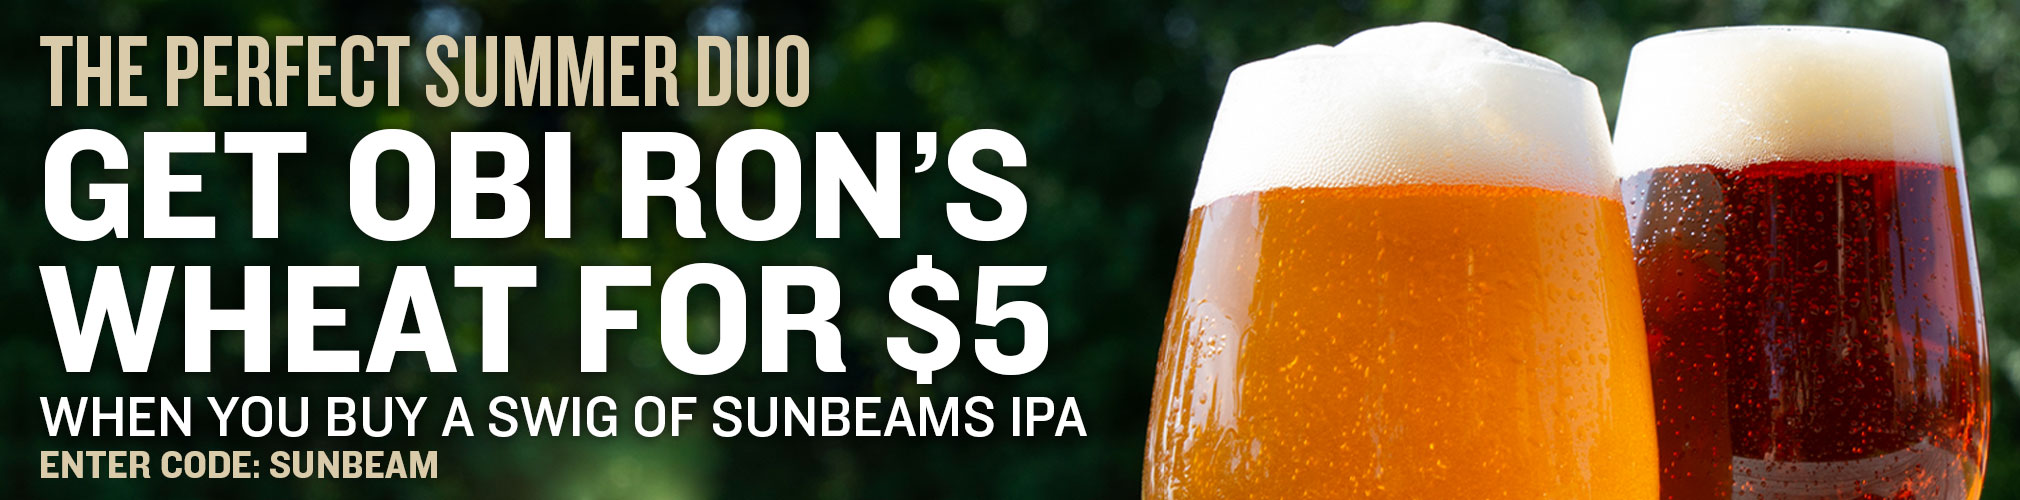 Get Obi Ron's Wheat for $5 when you buy a Swig of Sunbeams IPA